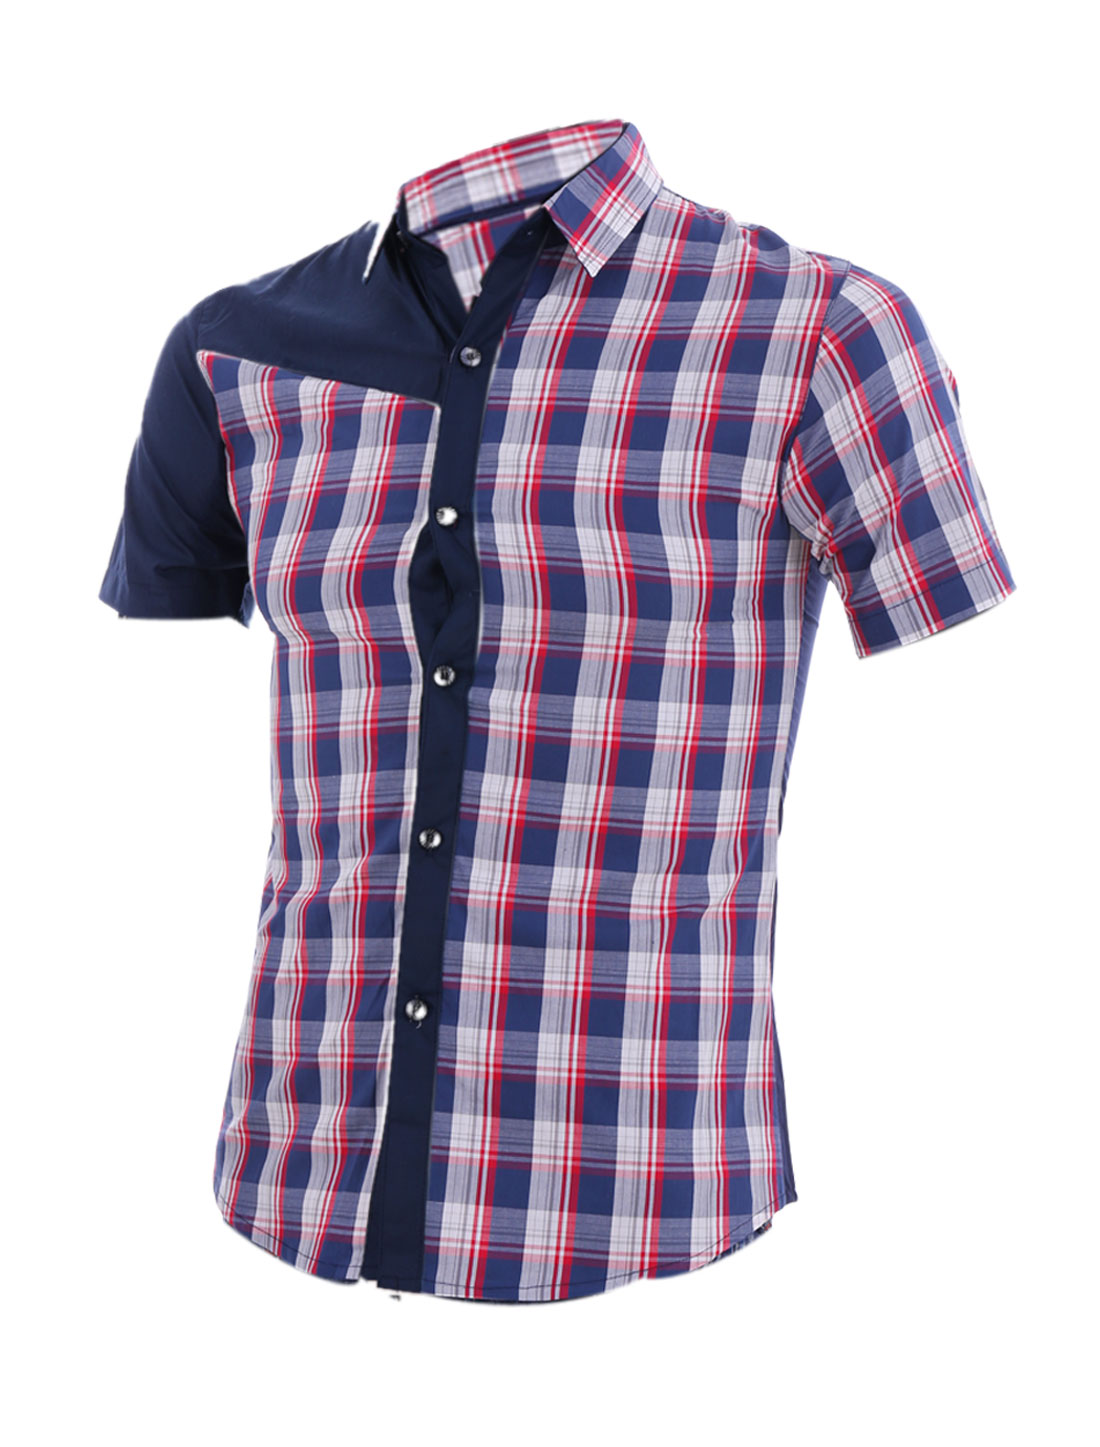 Men S Navy Blue Point Collar Short Sleeve Single Breasted Stylish Top Shirt